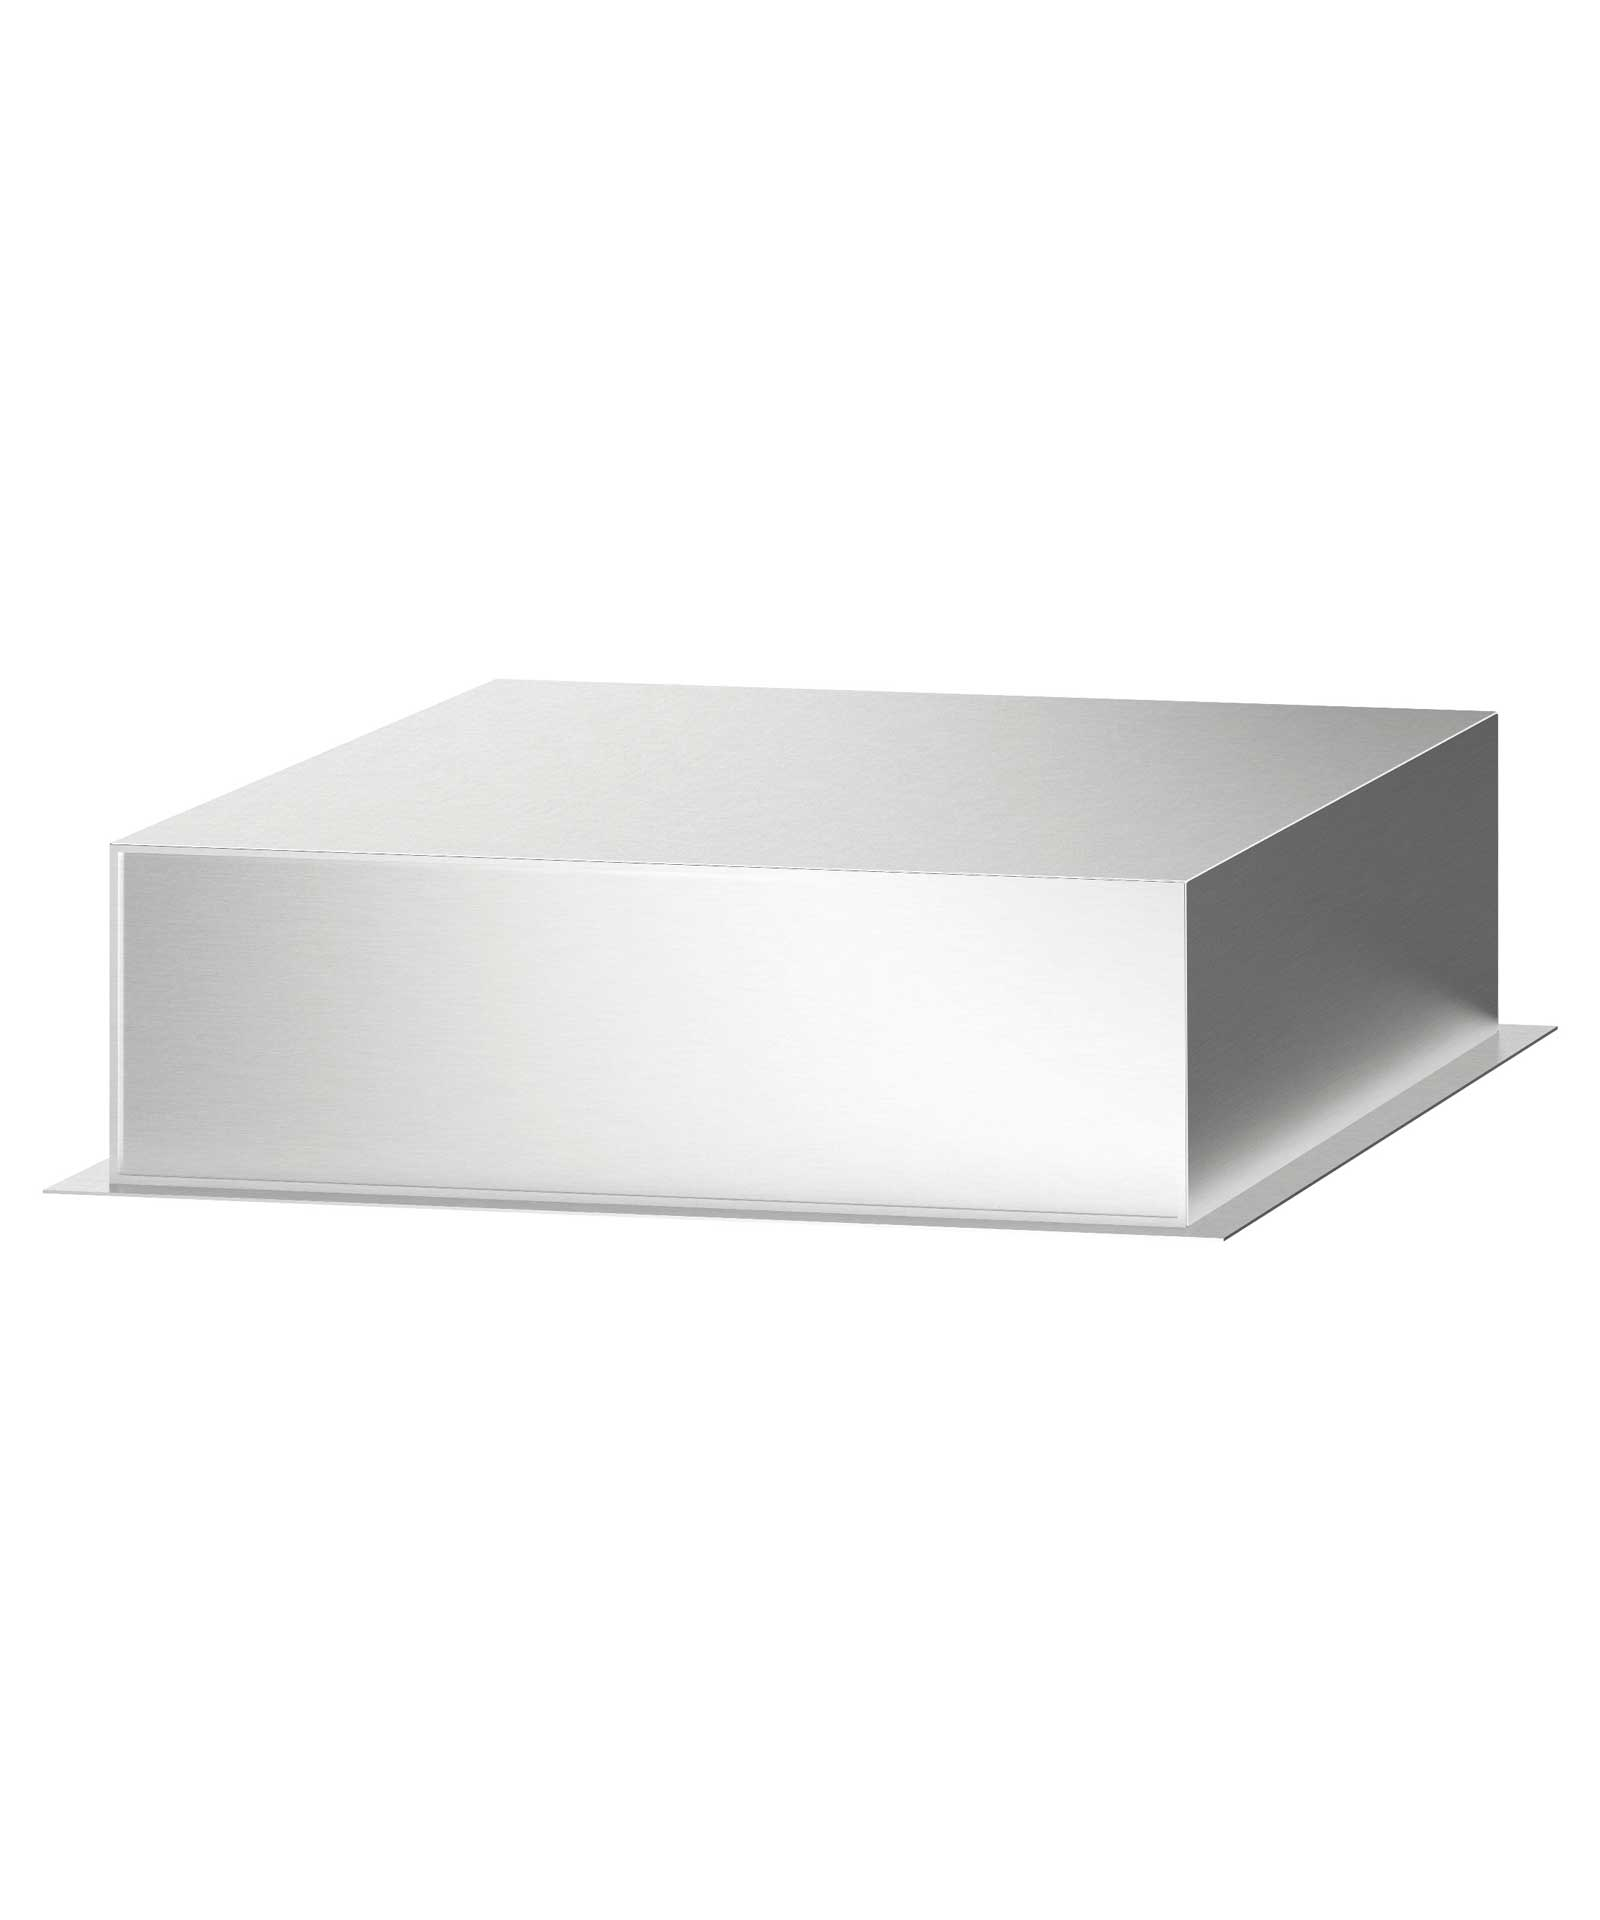 Fisher and Paykel Downdraft External Blower